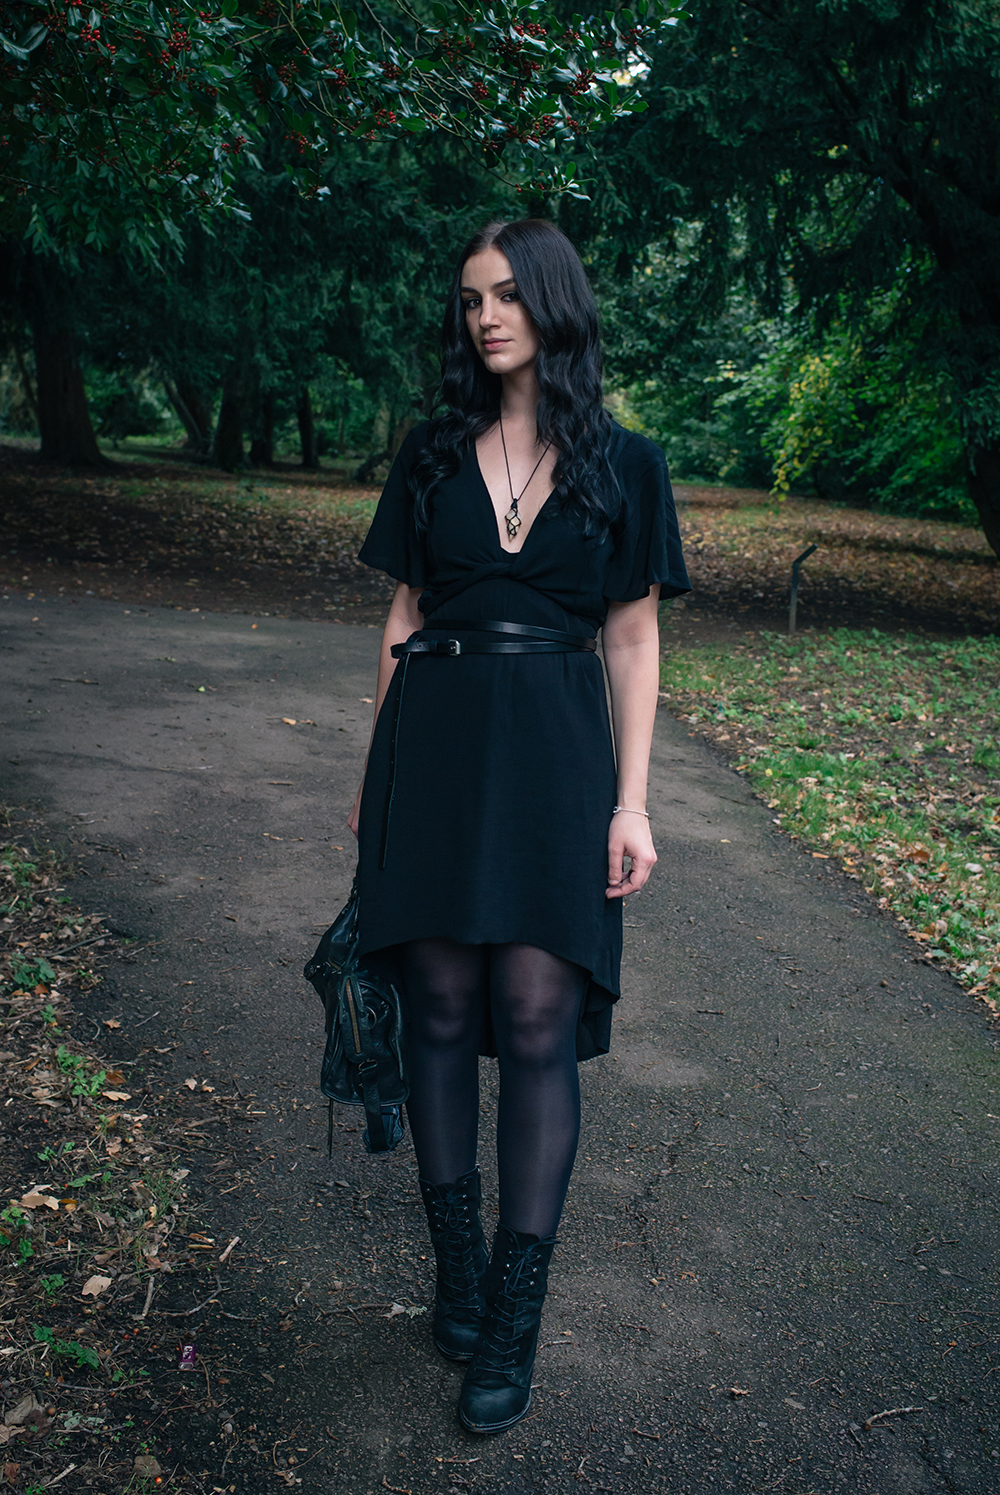 Fashion blogger Stephanie of FAIIINT wearing Tobi high low dress with cropped kimono wrap top, All Saints double belt, Quartz necklace, Kurt Geiger Saturn lace up boots. All black dark street style outfit.